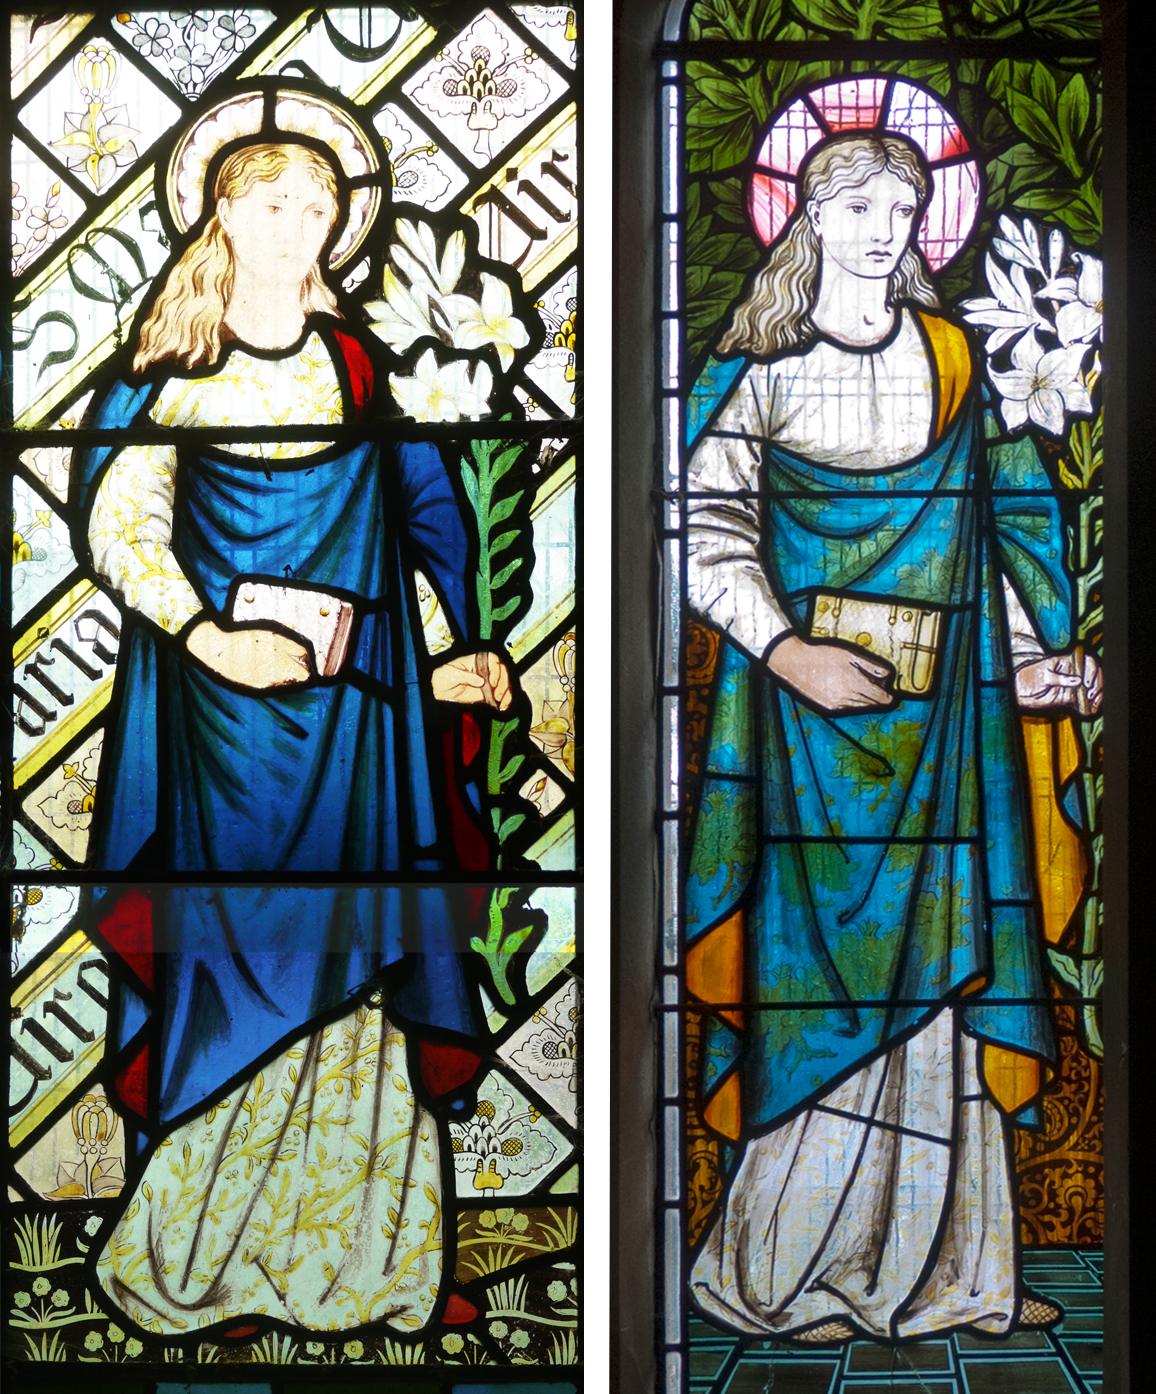 1865 Beaudesert Virgin Mary                                                                            1873 Sopworth Virgin Mary